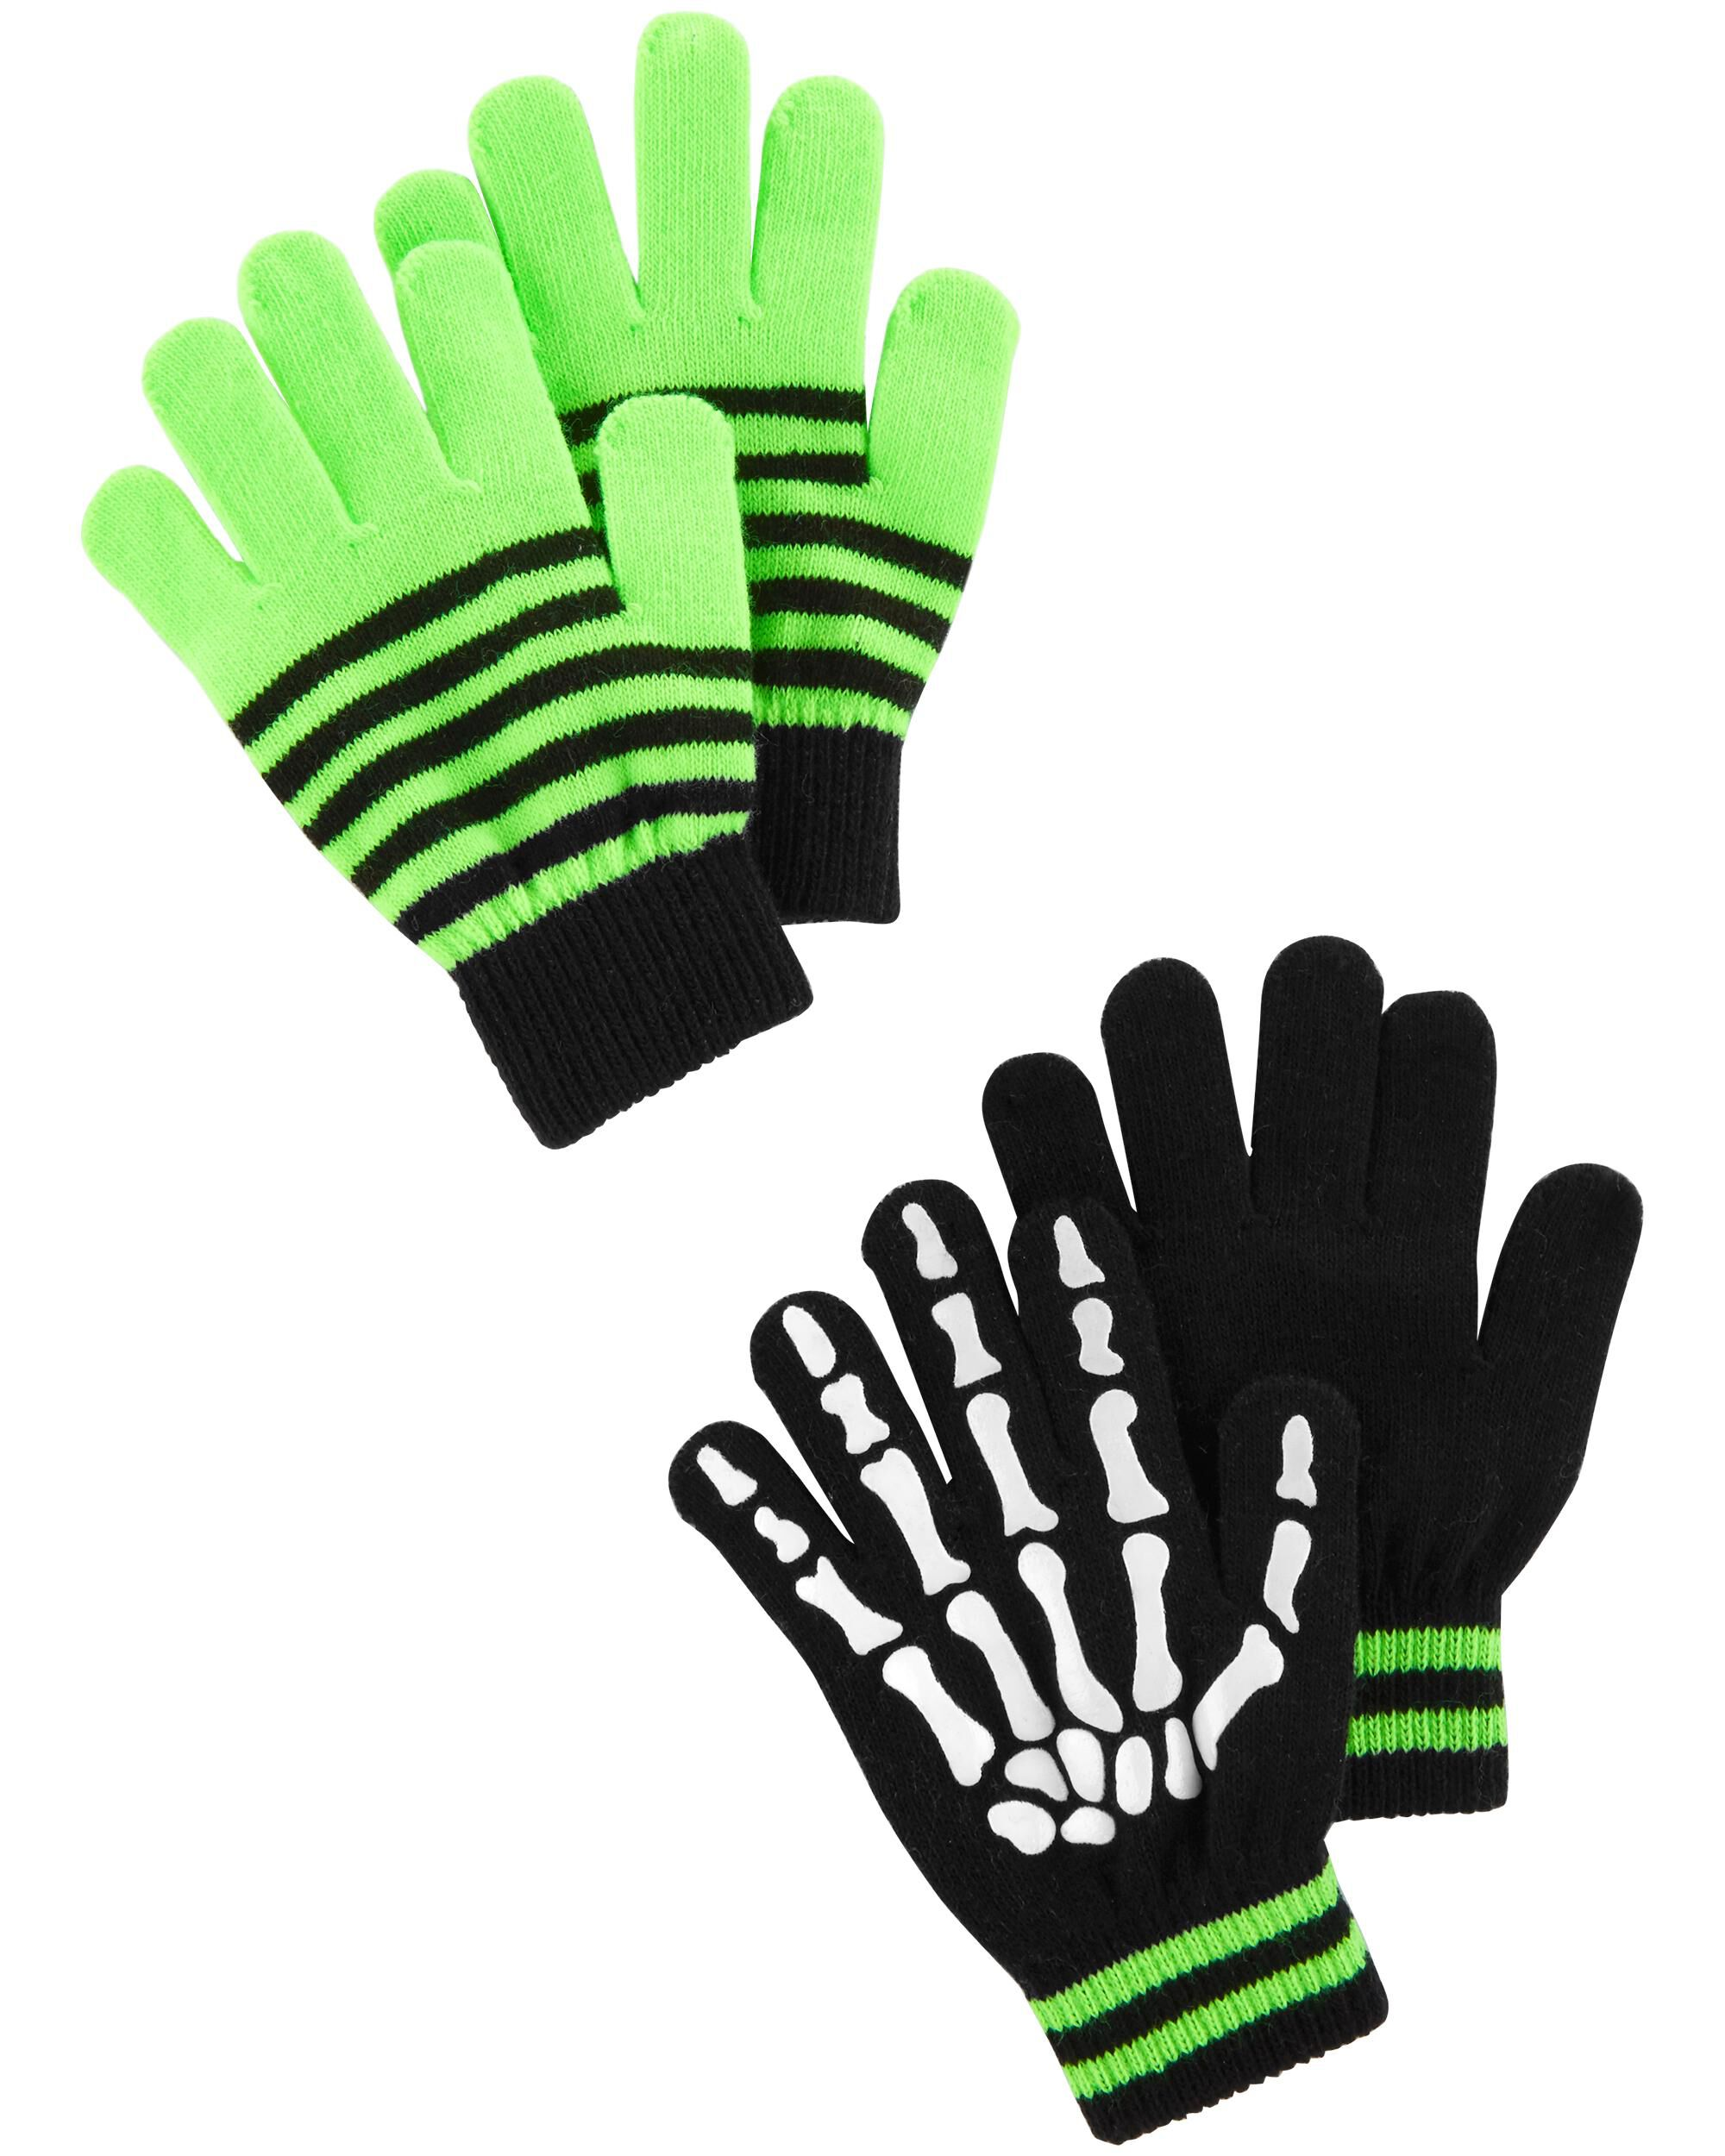 GLOVES GLOW IN THE DARK ACRYLIC SPANDEX POLYESTER